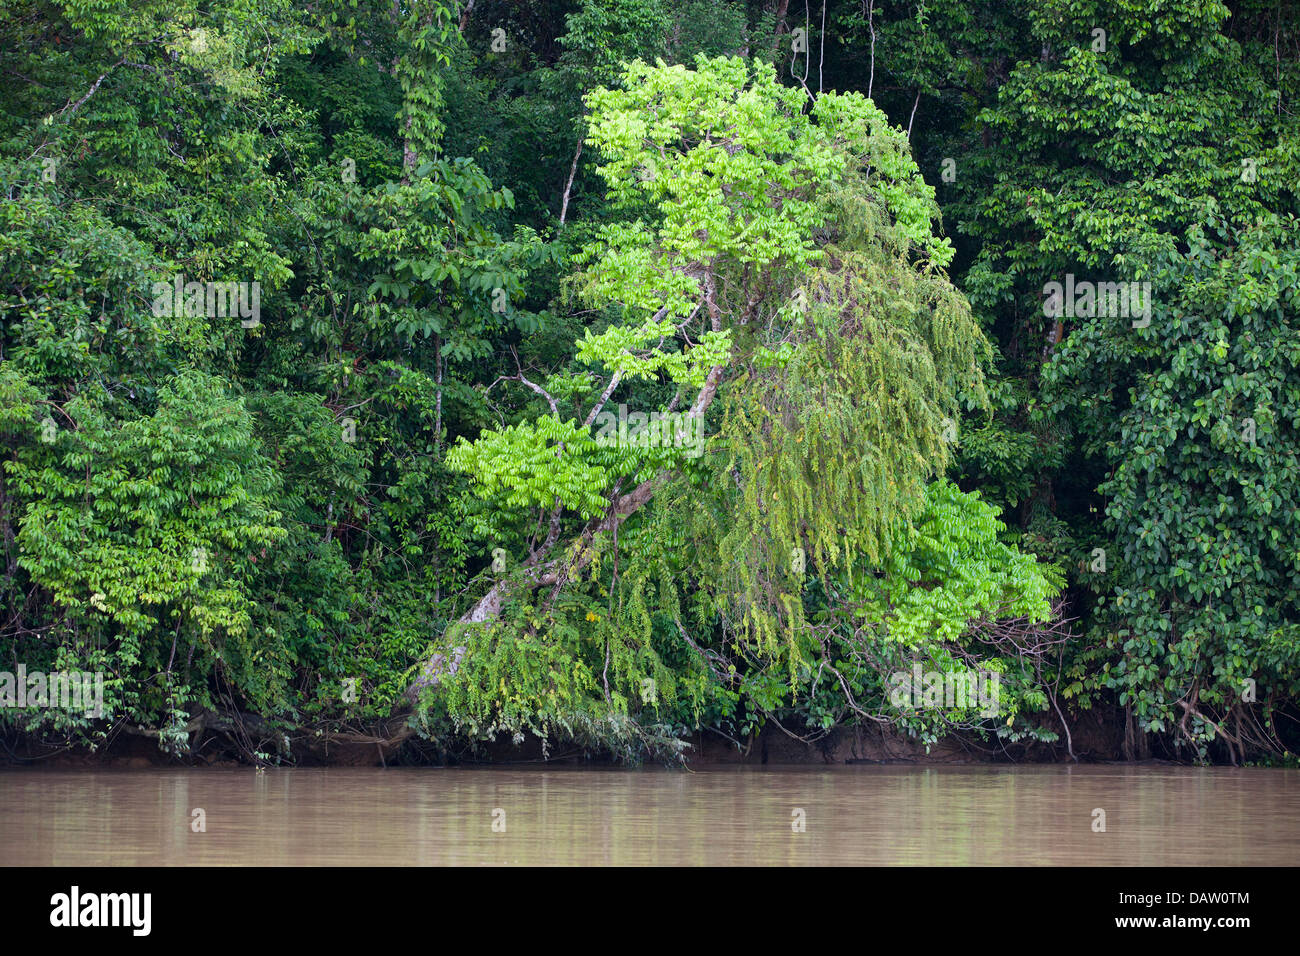 Lowland riparian forest along the Kinabantangan River - Stock Image